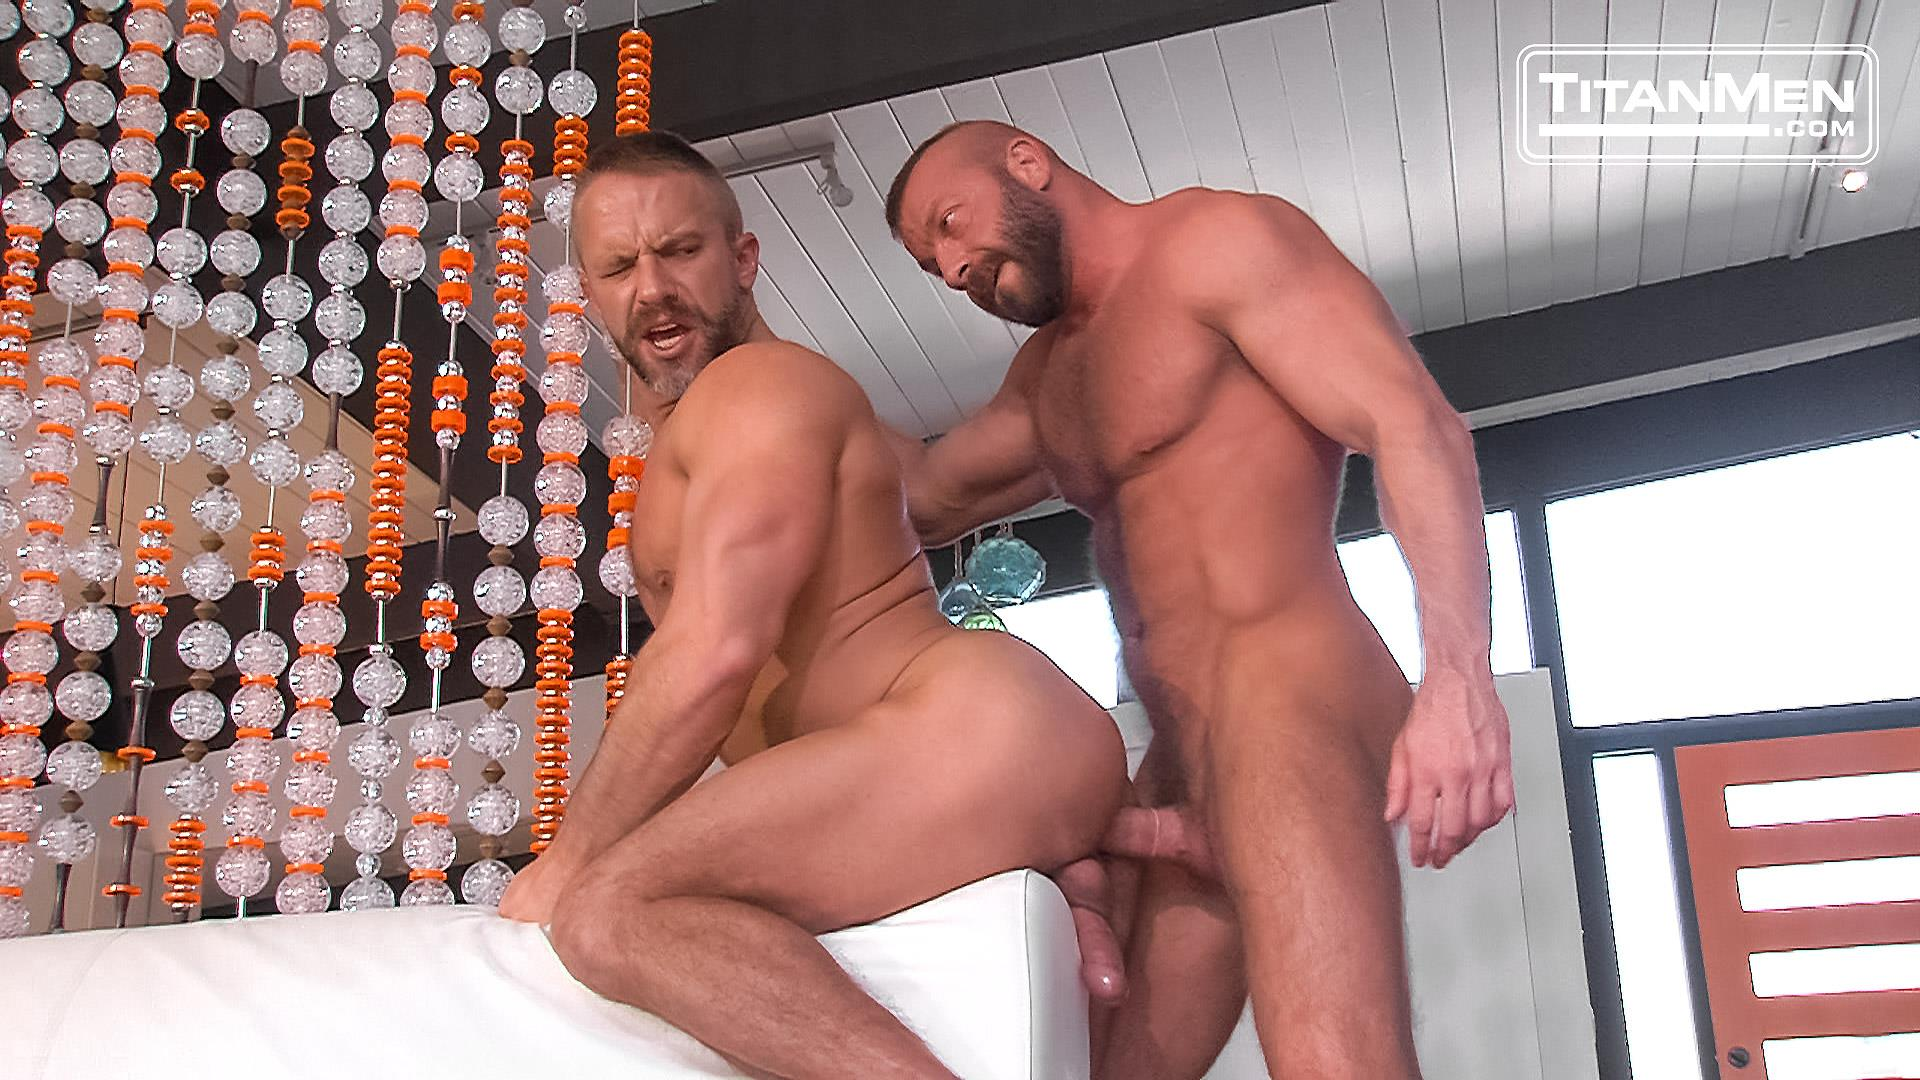 Titanmen Titan Hunter Marx and Dirk Caber Hairy Muscle Daddy Fuck Amateur Gay Porn 34 Dirk Carber Gets Fucked Hard By Another Muscle Daddy With A Thick Cock